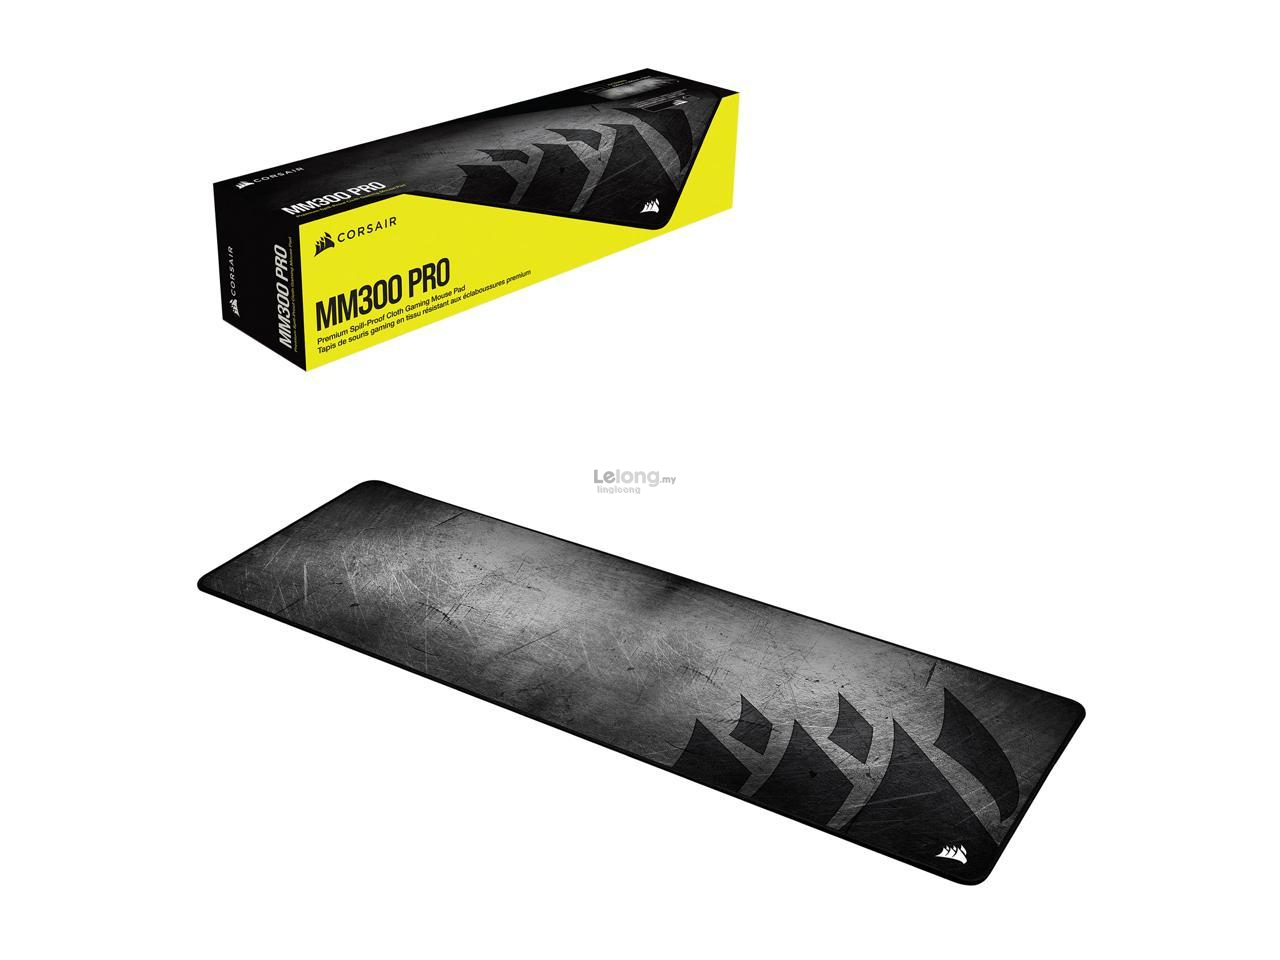 # CORSAIR MM300 PRO Spill-Proof Cloth Gaming Mouse Pad # [Extended]